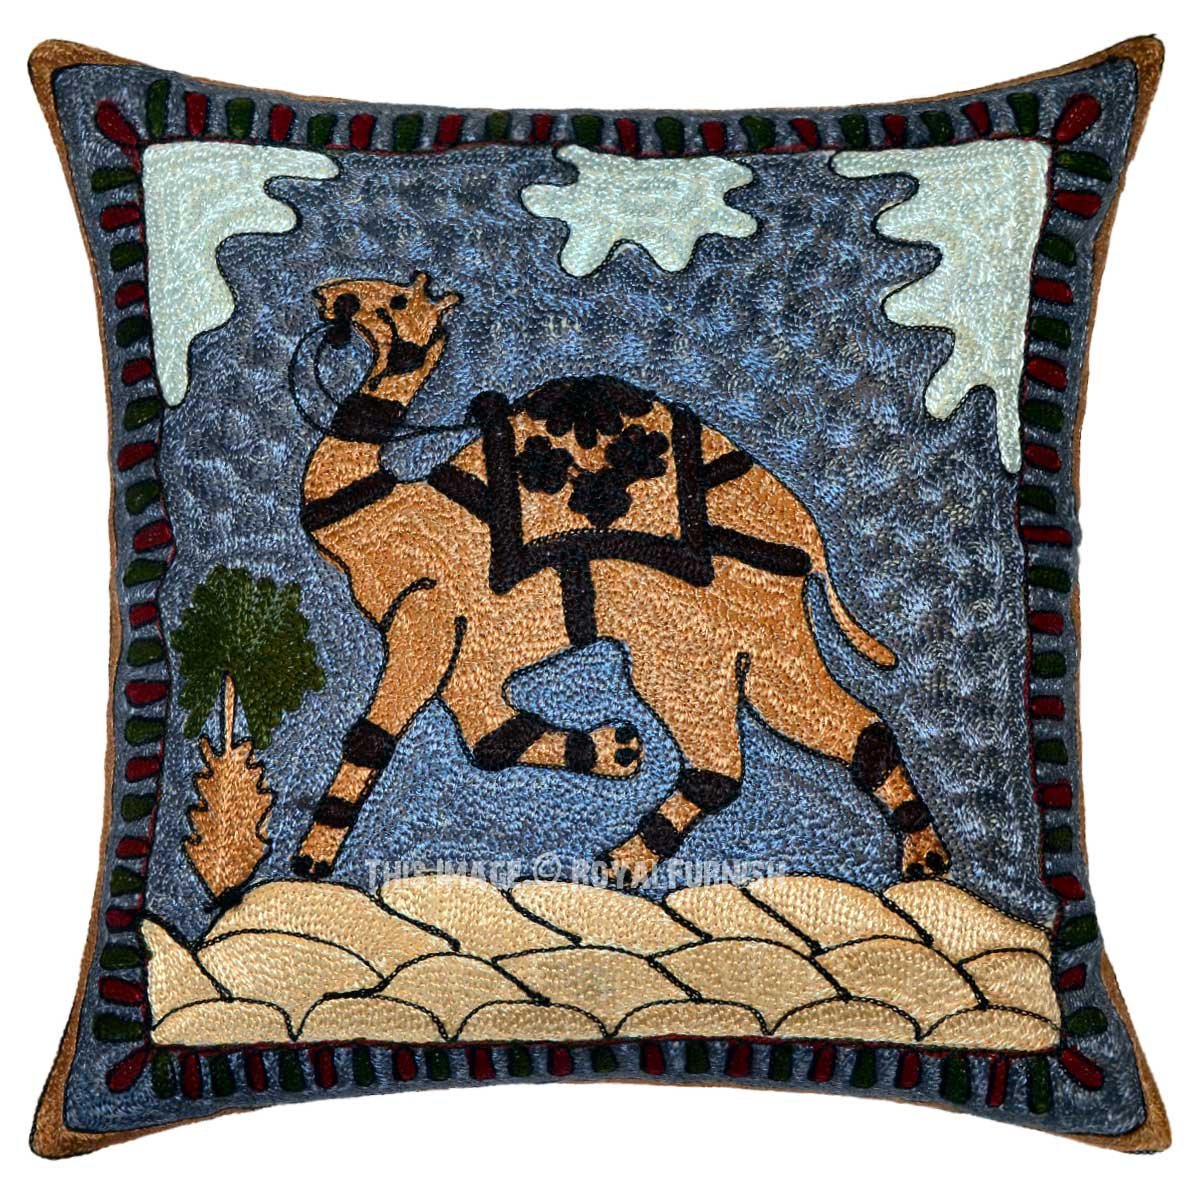 Embroidered Decorative Pillow : 16